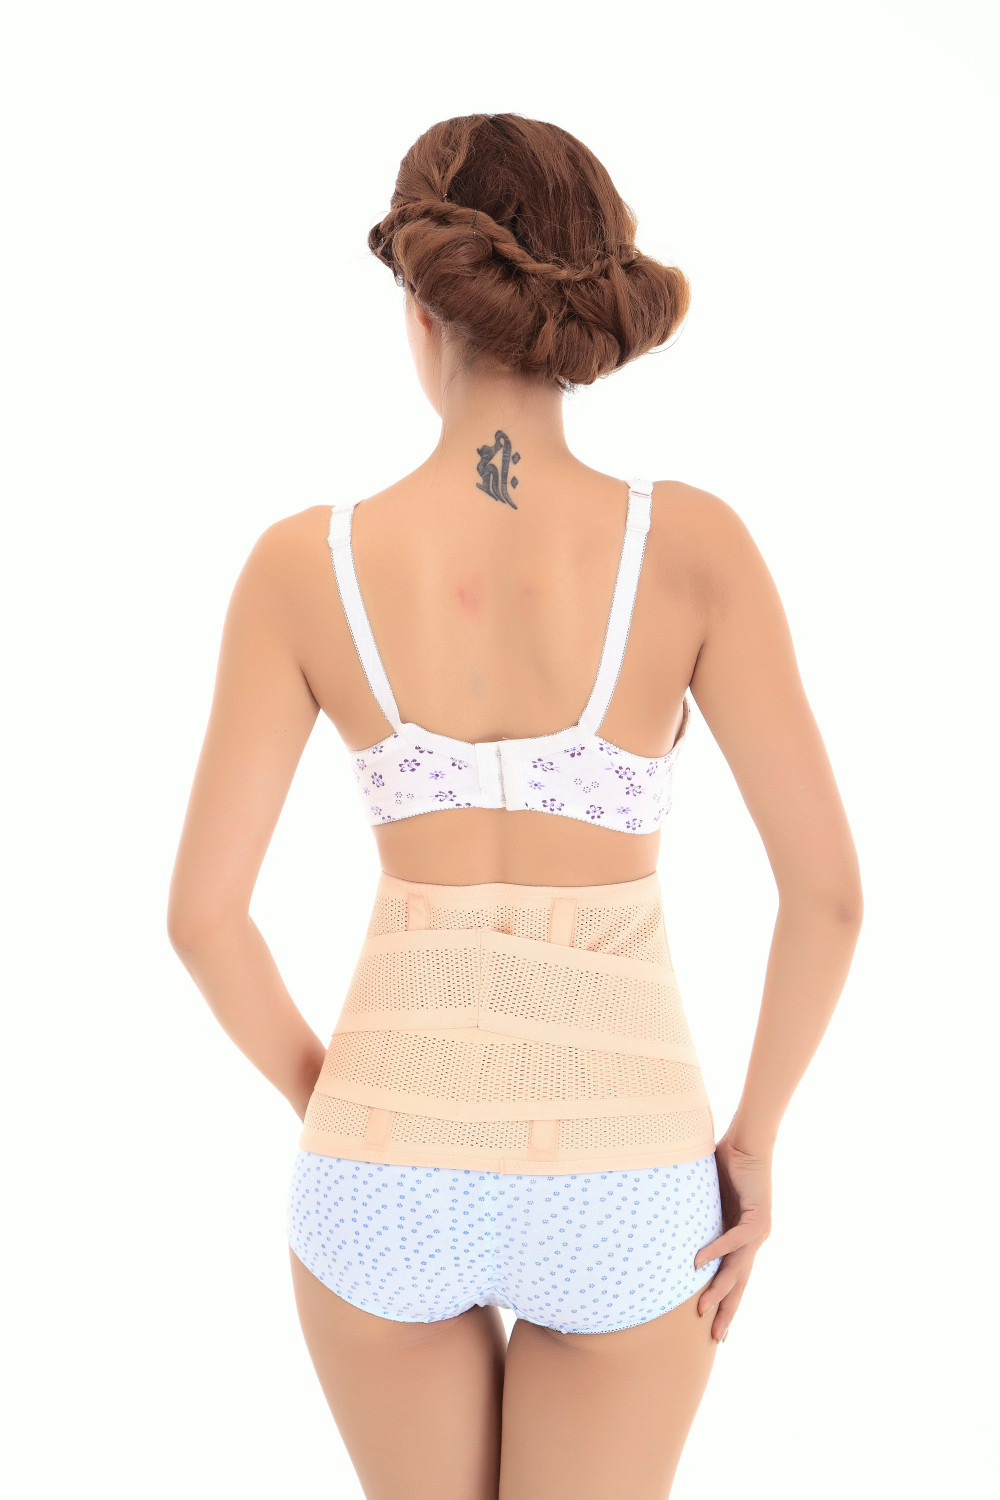 Women Postpartum Belly Wrap For Tummy 13